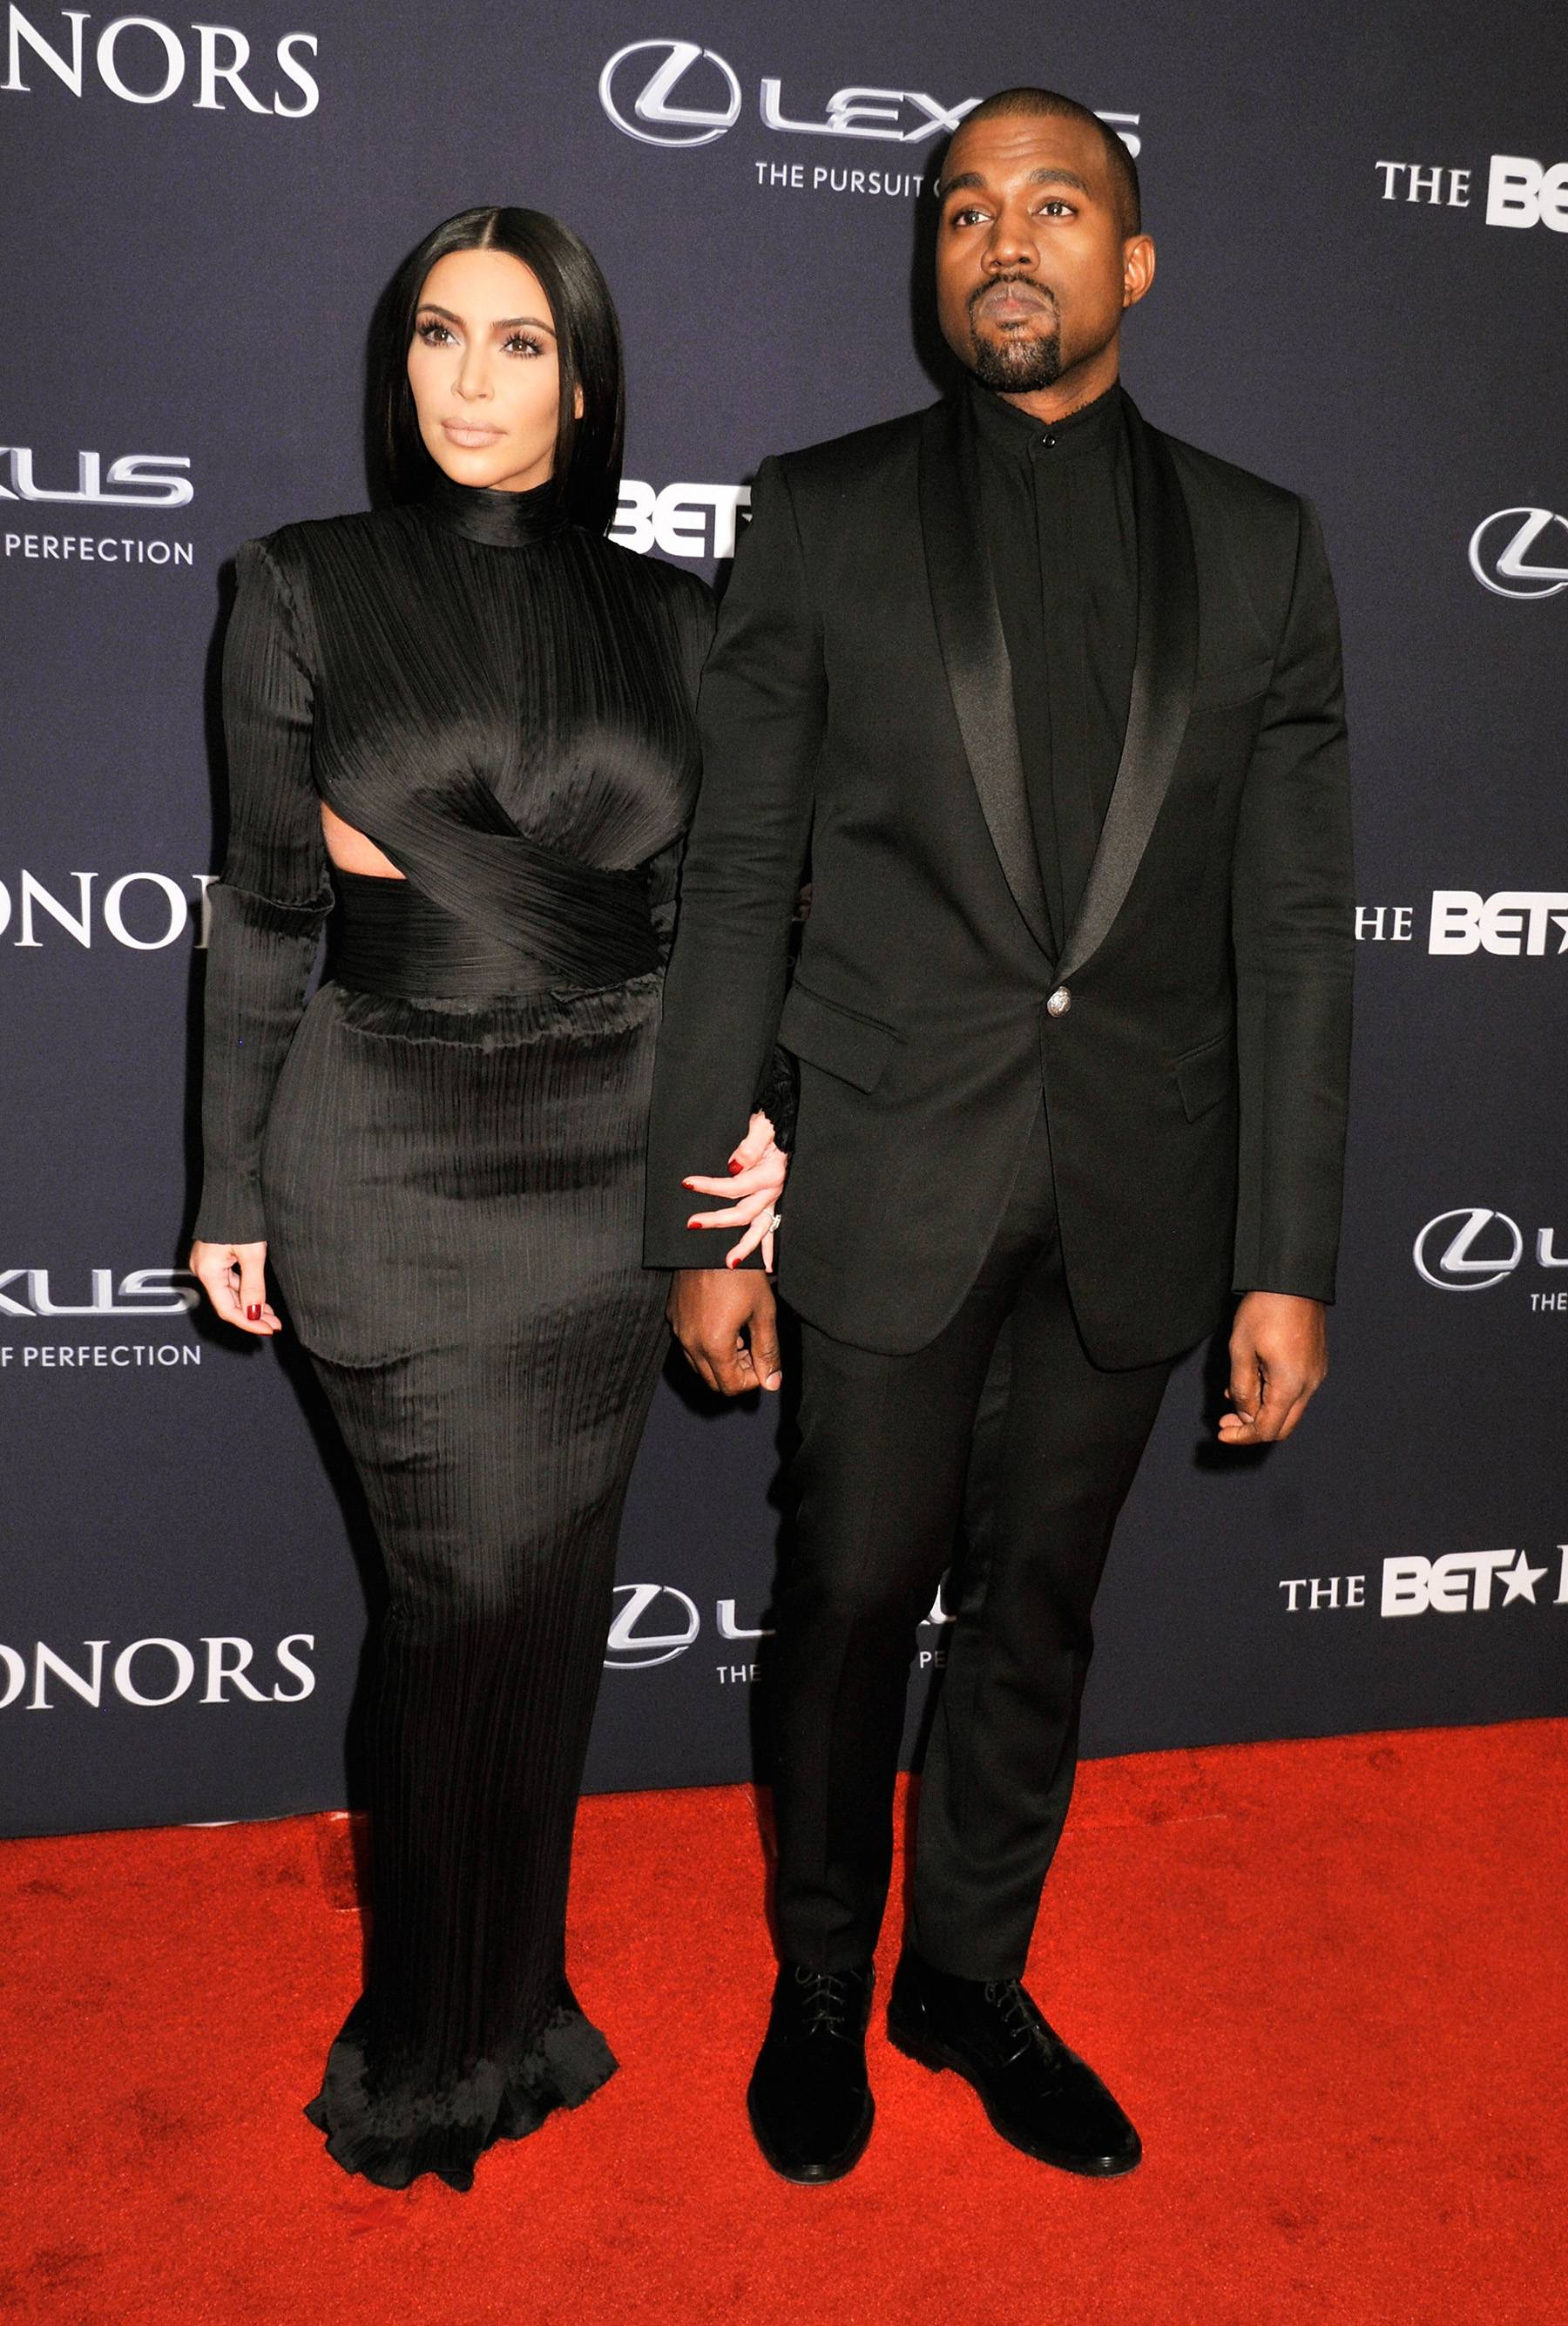 """Award-Winning Couple - Kim Kardashian and The BET Honors Visionary Award winner Kanye West slay from head to toe in black. Kim K and Yeezy make """"stunning"""" look so easy. (Photo: Kris Connor/BET/Getty Images for BET)"""